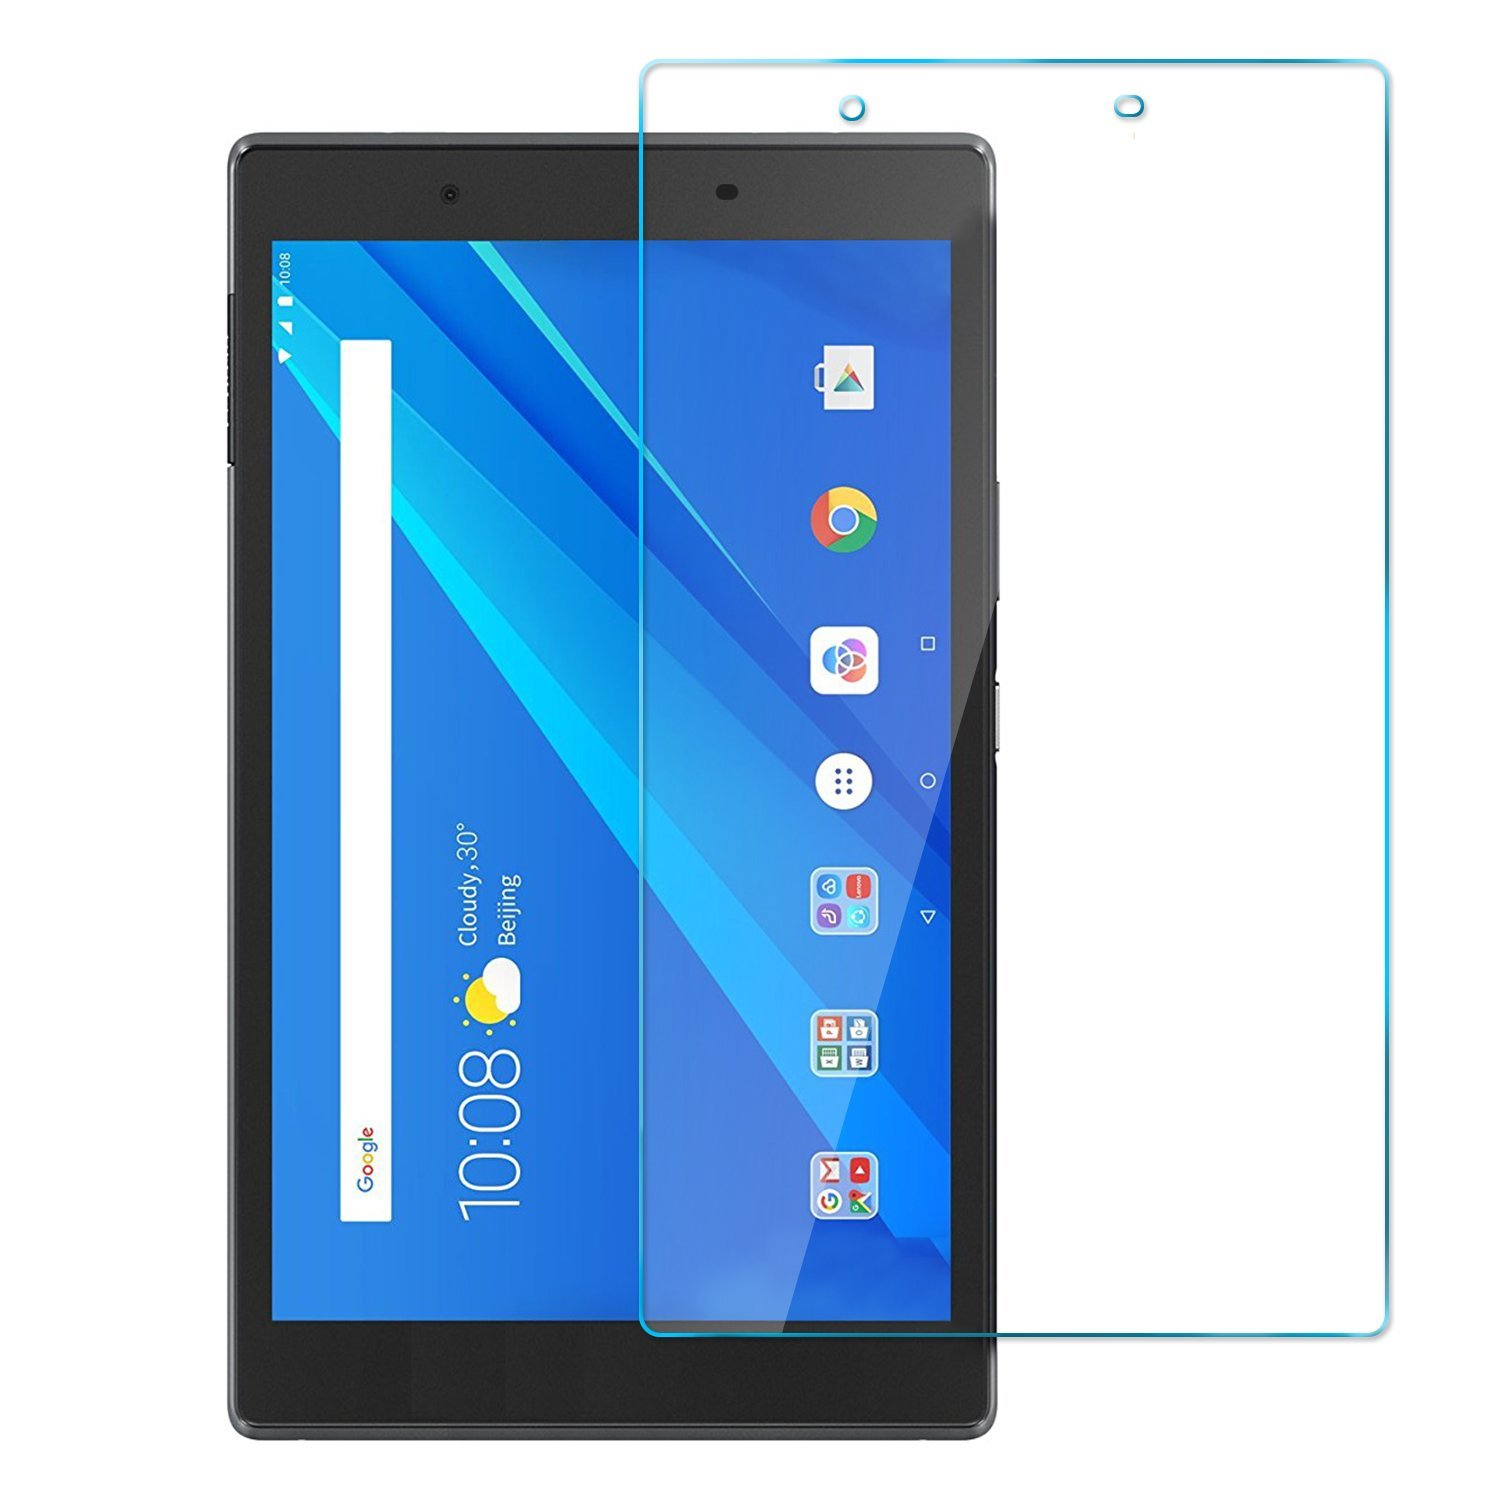 Screen Protector Tempered Glass for Lenovo Tab 4 8 Plus TB-8704 TB-8704F TB-8704N (TAB4 8 Plus) 9H HD clear Screen Protector